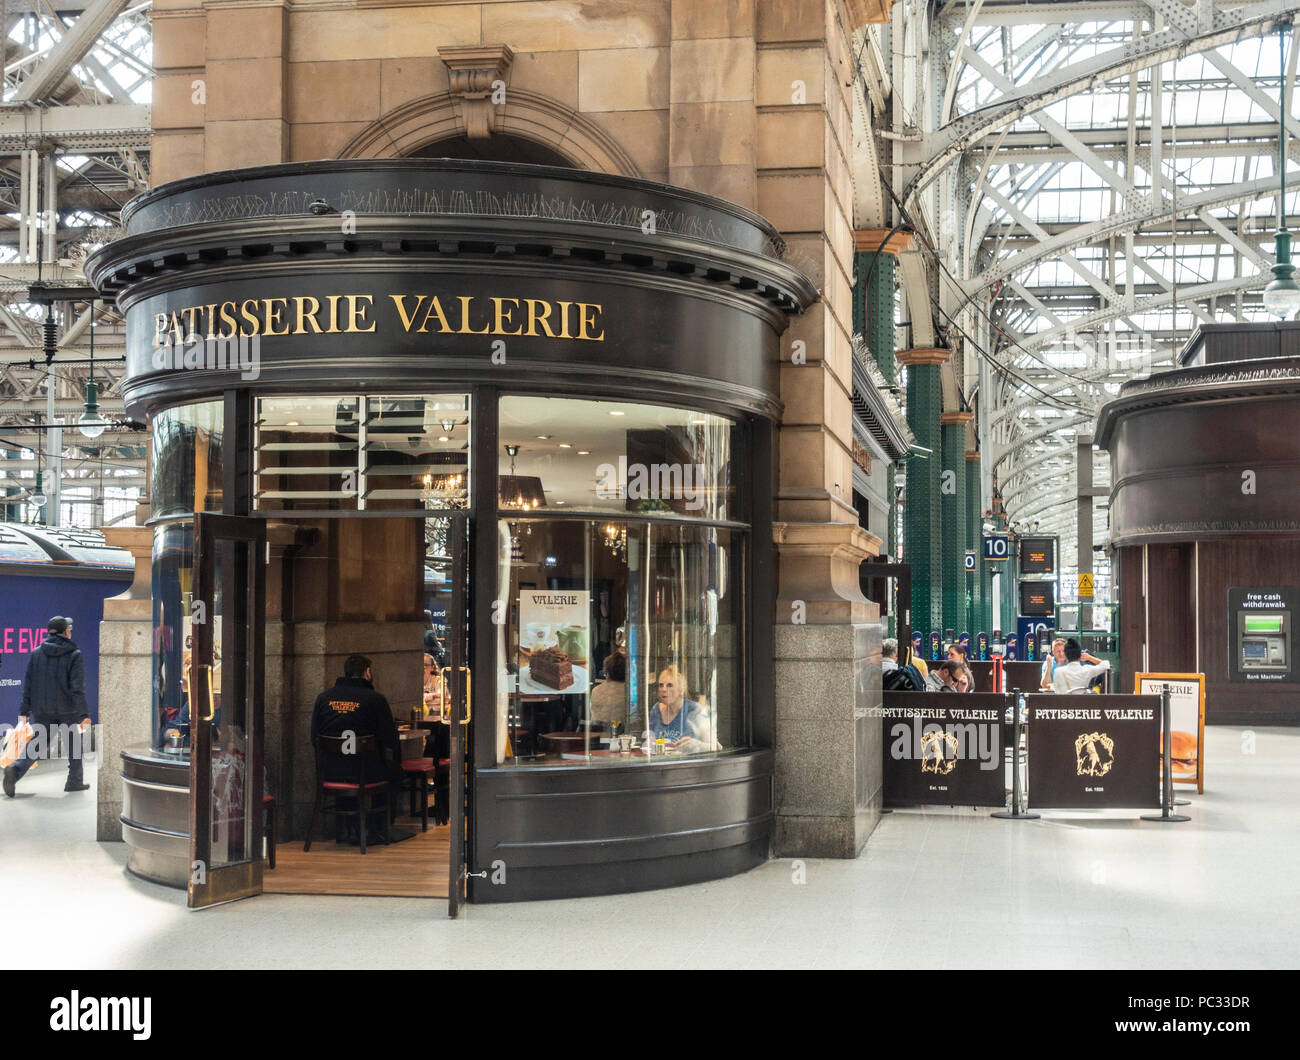 Exterior of, and customers in, the branch of Patisserie Valerie pastry cafe in Glasgow Central Station. - Stock Image